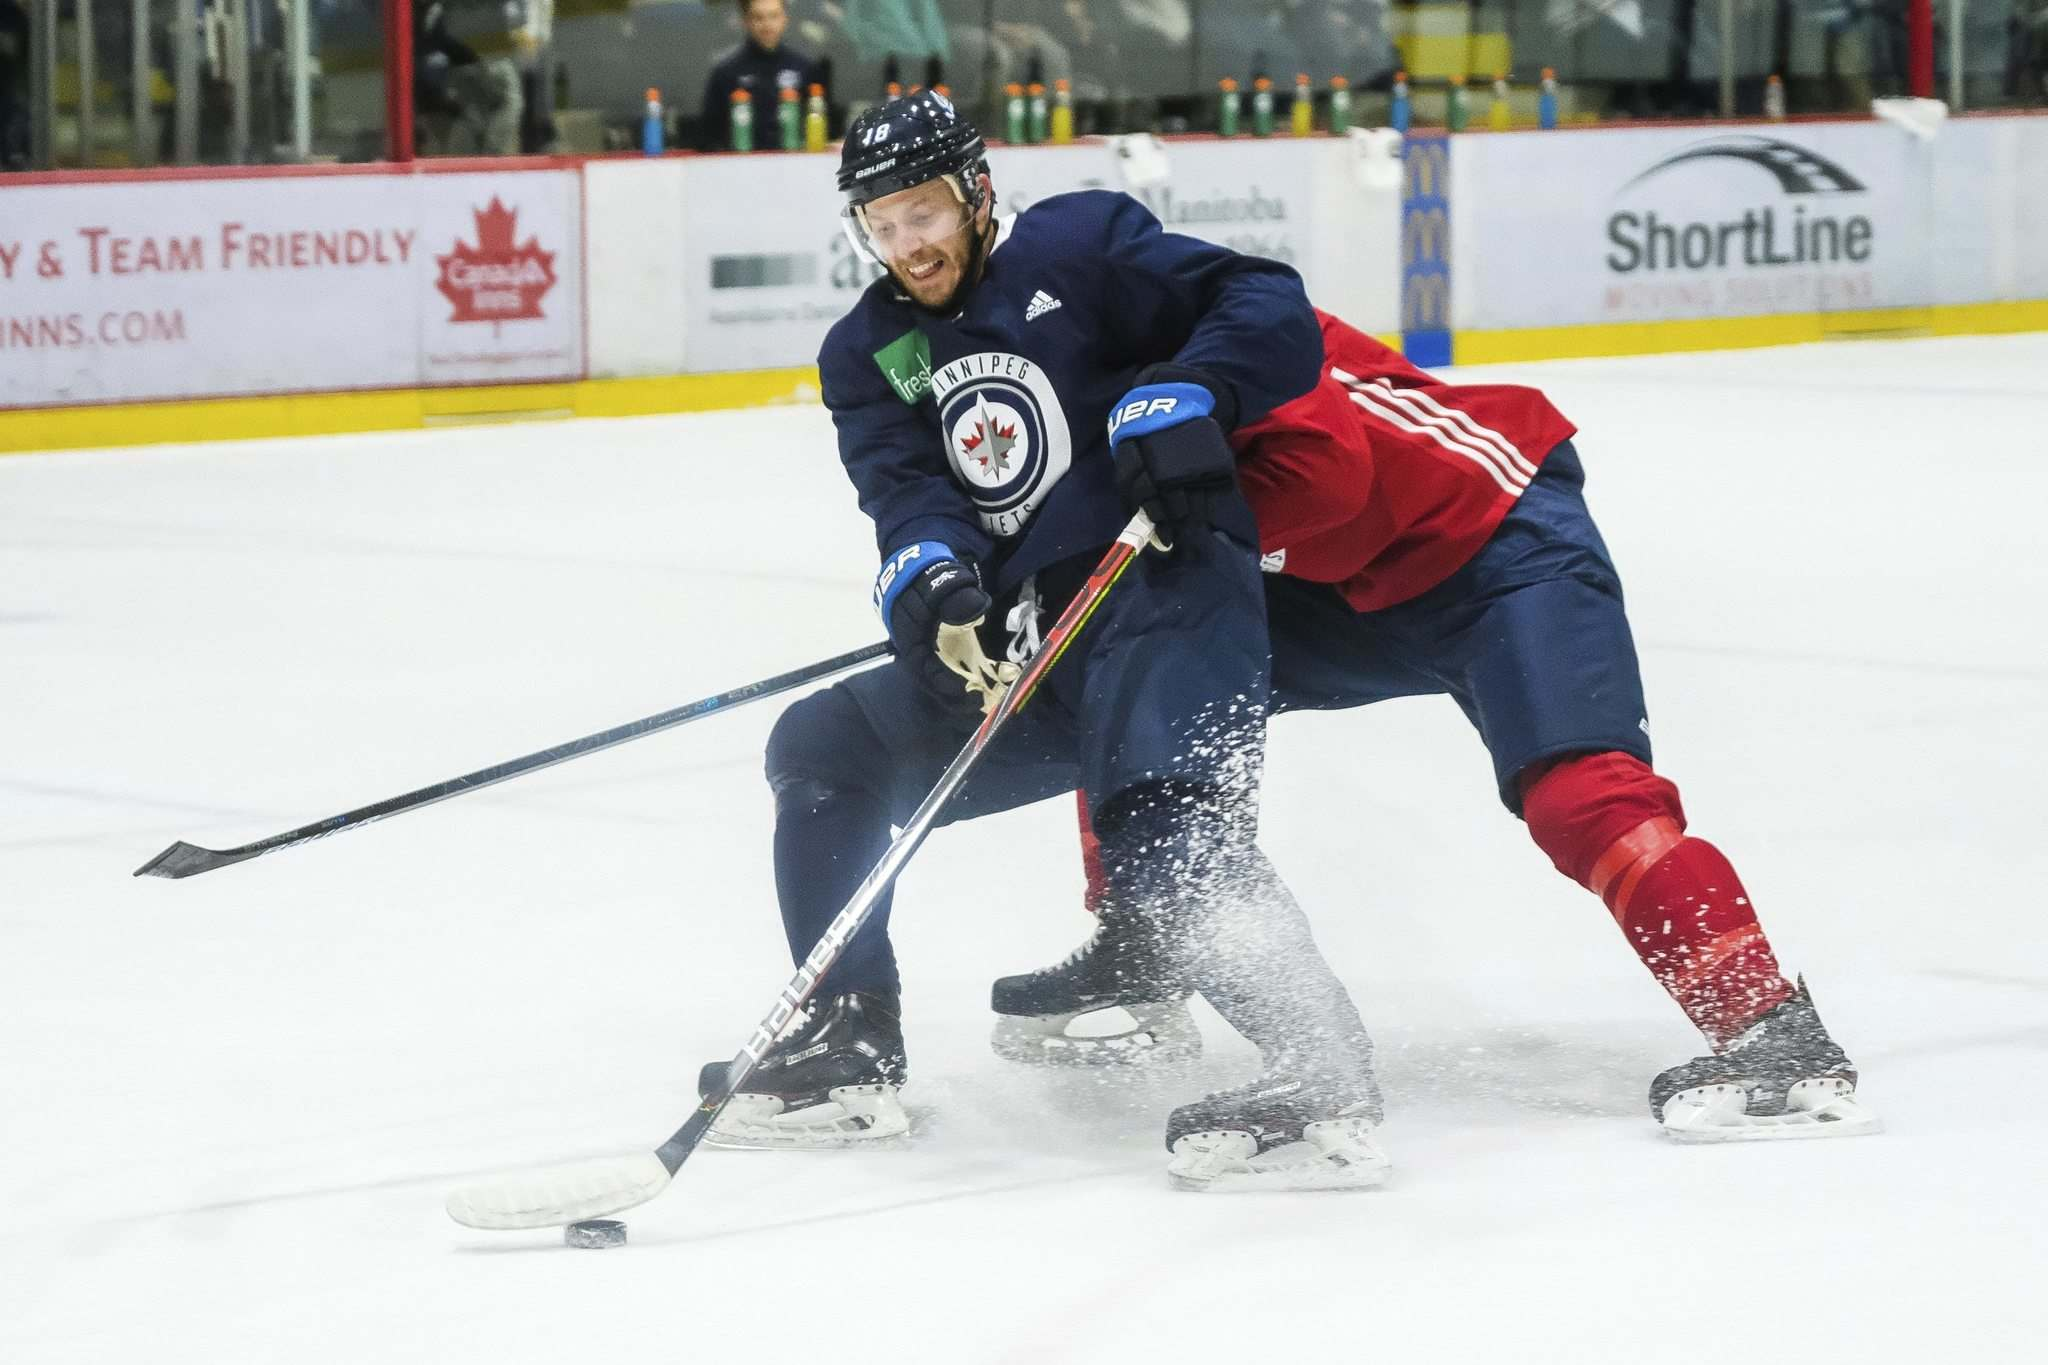 "DANIEL CRUMP / WINNIPEG FREE PRESS</p> <p>Jets forward Bryan Little handles the puck during a training camp session on Saturday at the Iceplex. Training camp continues today before the team heads to Edmonton for a pre-season tilt against the Oilers.</p> </p> <p>""></a><figcaption readability="